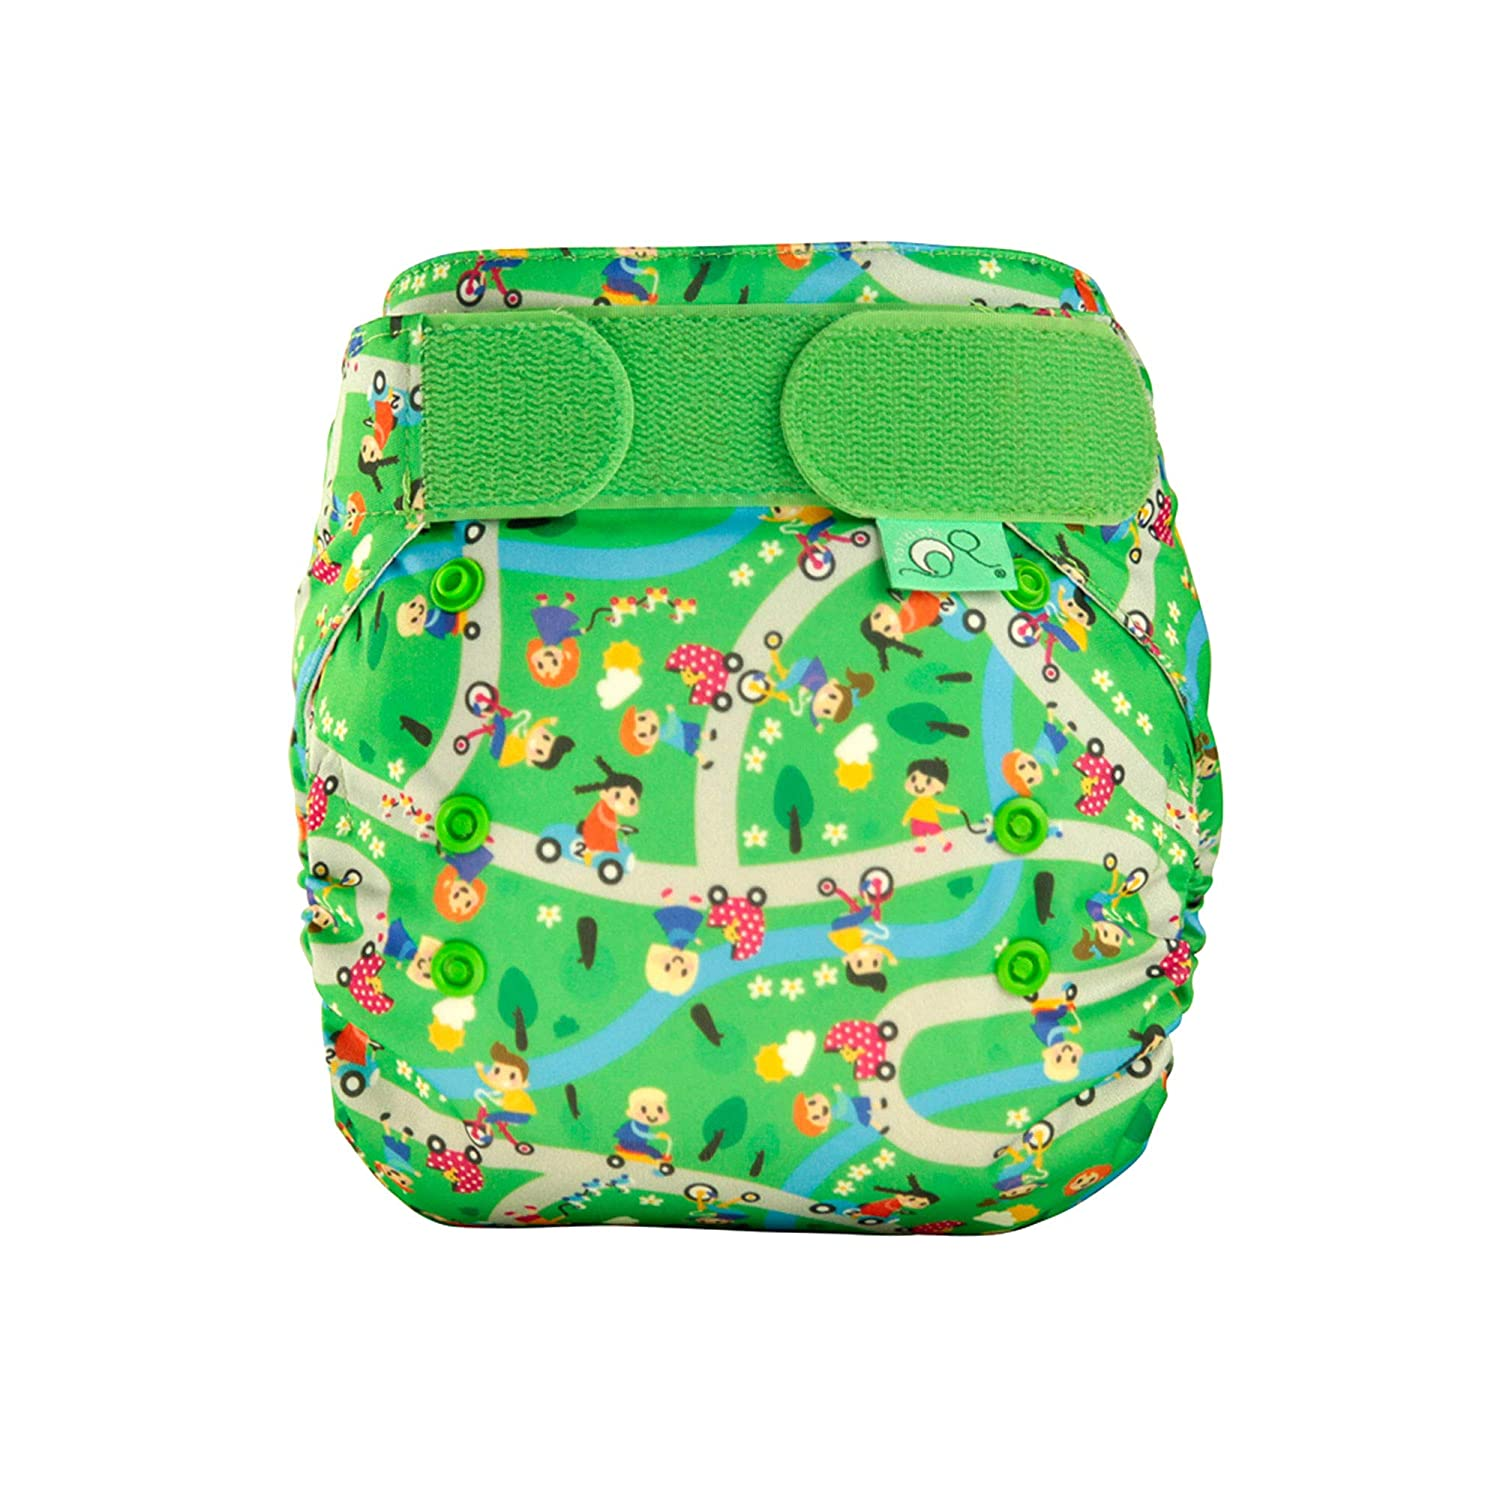 TotsBots EasyFit STAR Ride & Shine Reusable Washable Nappy - One Size Tots Bots Limited